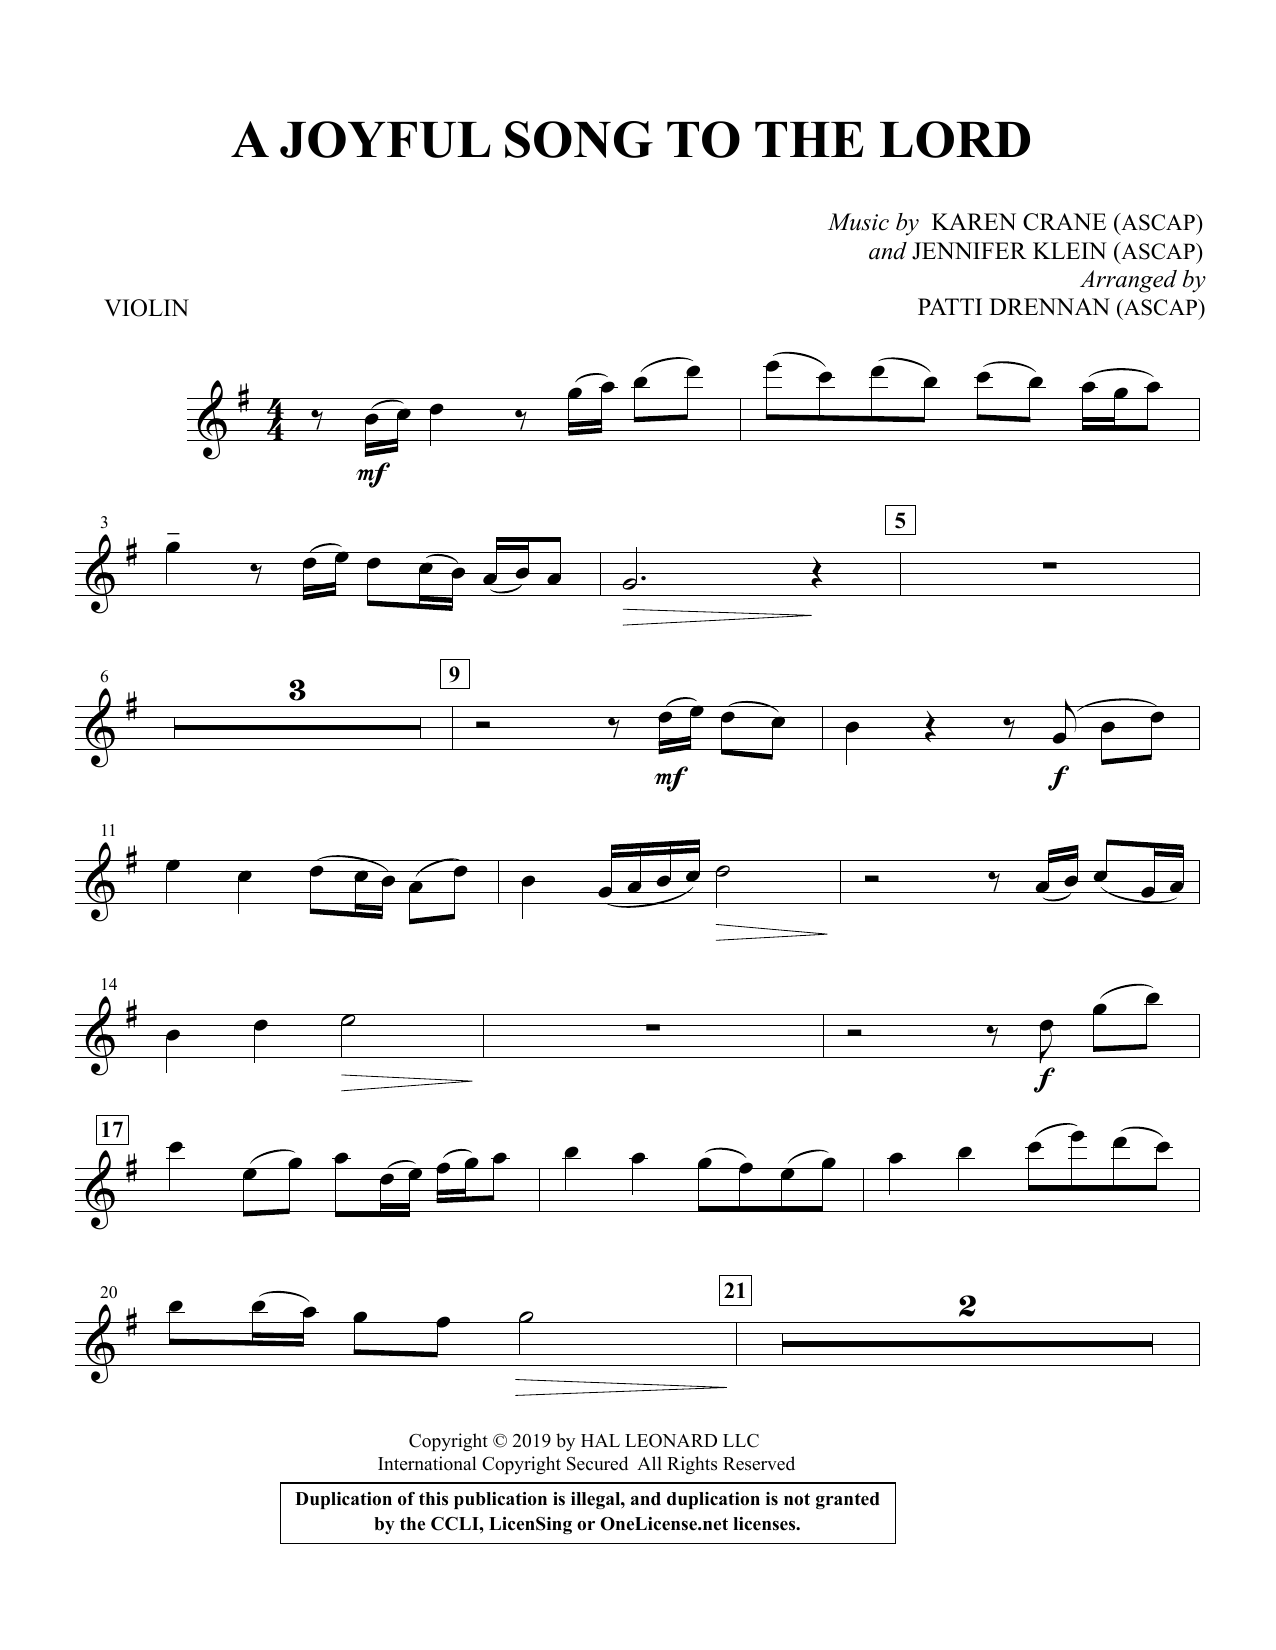 A Joyful Song to the Lord (arr. Patti Drennan) - Violin Partition Digitale